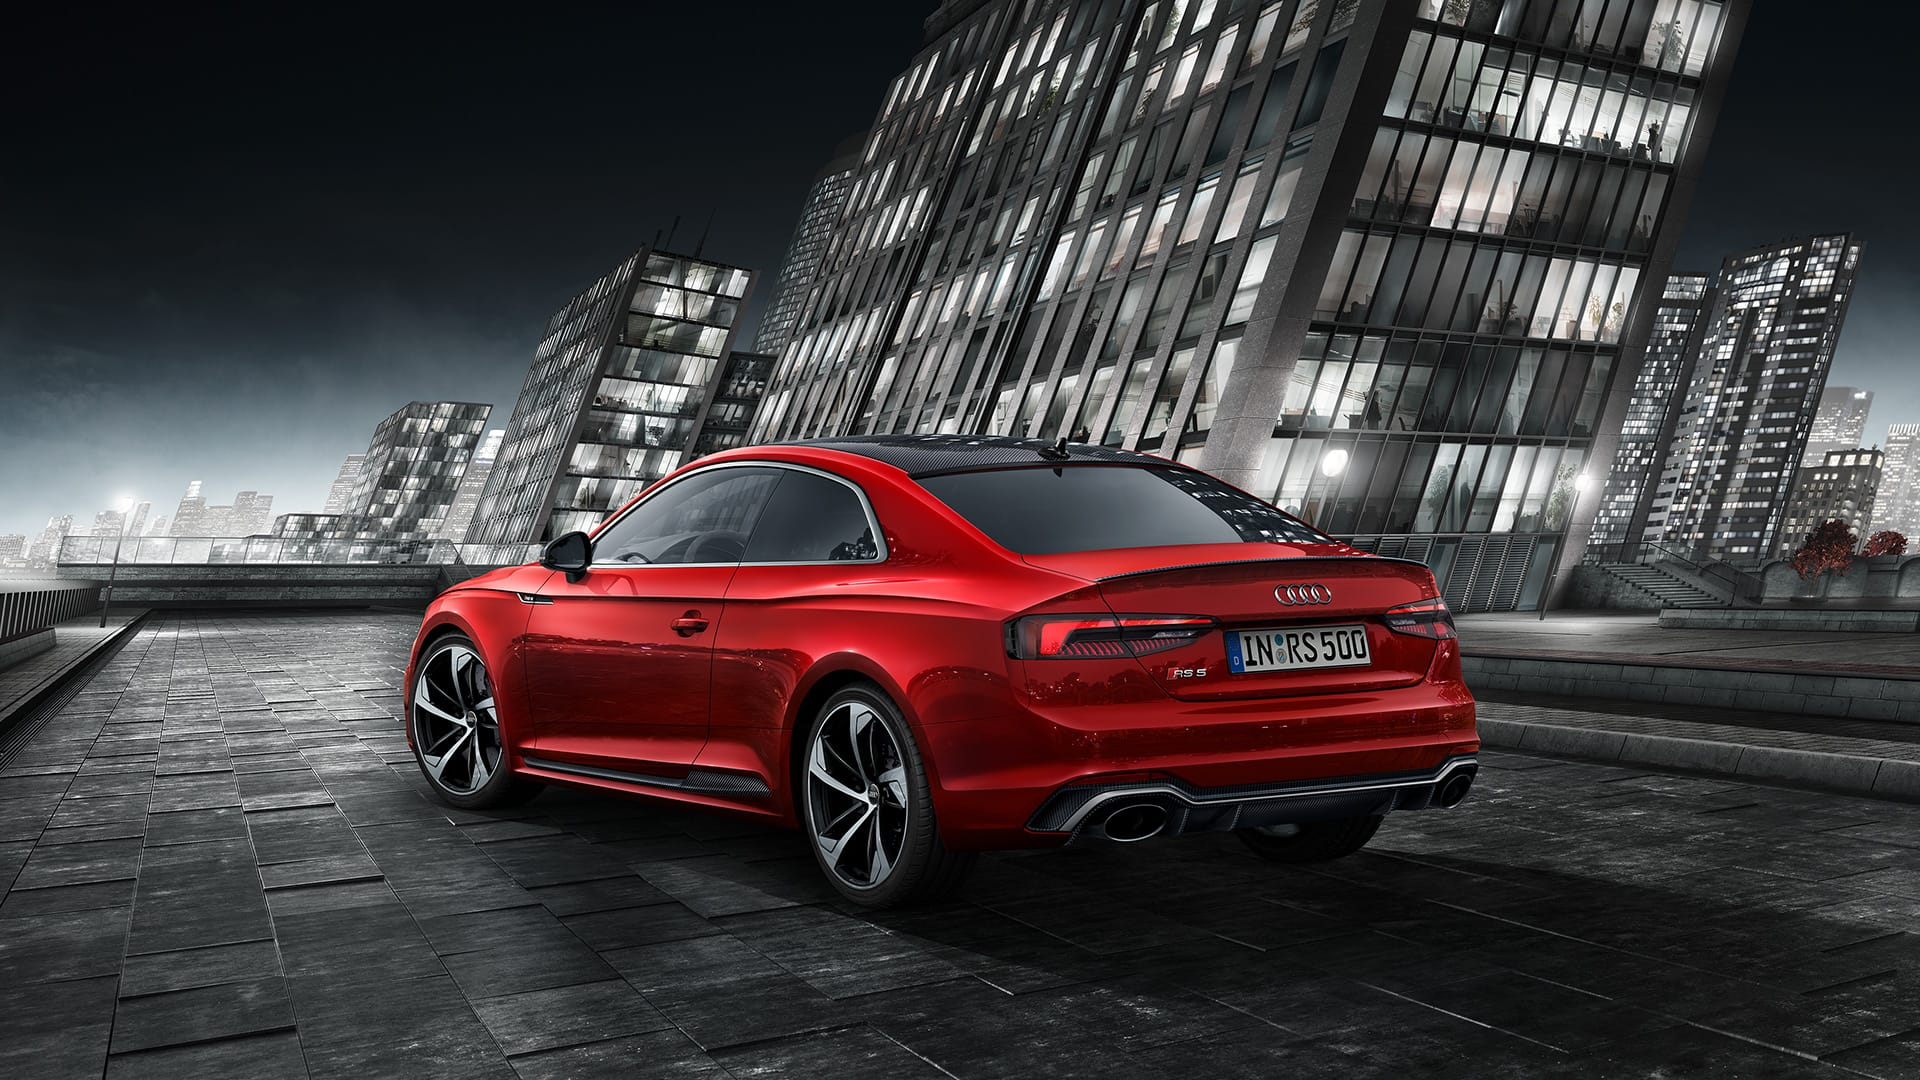 RS Coupé A Home Audi SA - Audi rs 5